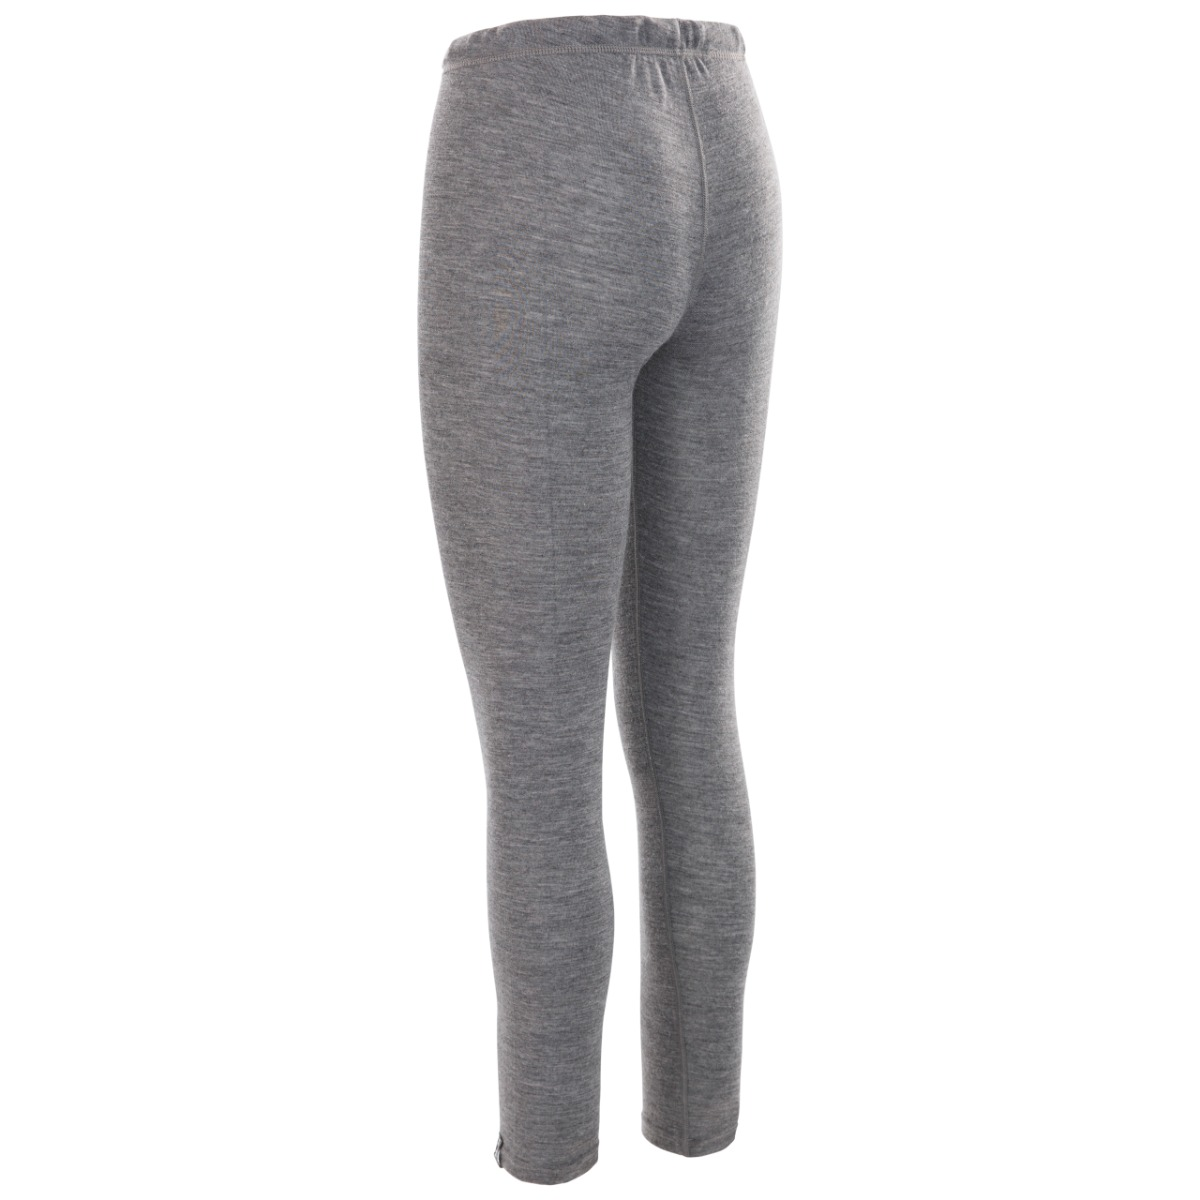 Chara Womens Dlx Thermal Trousers